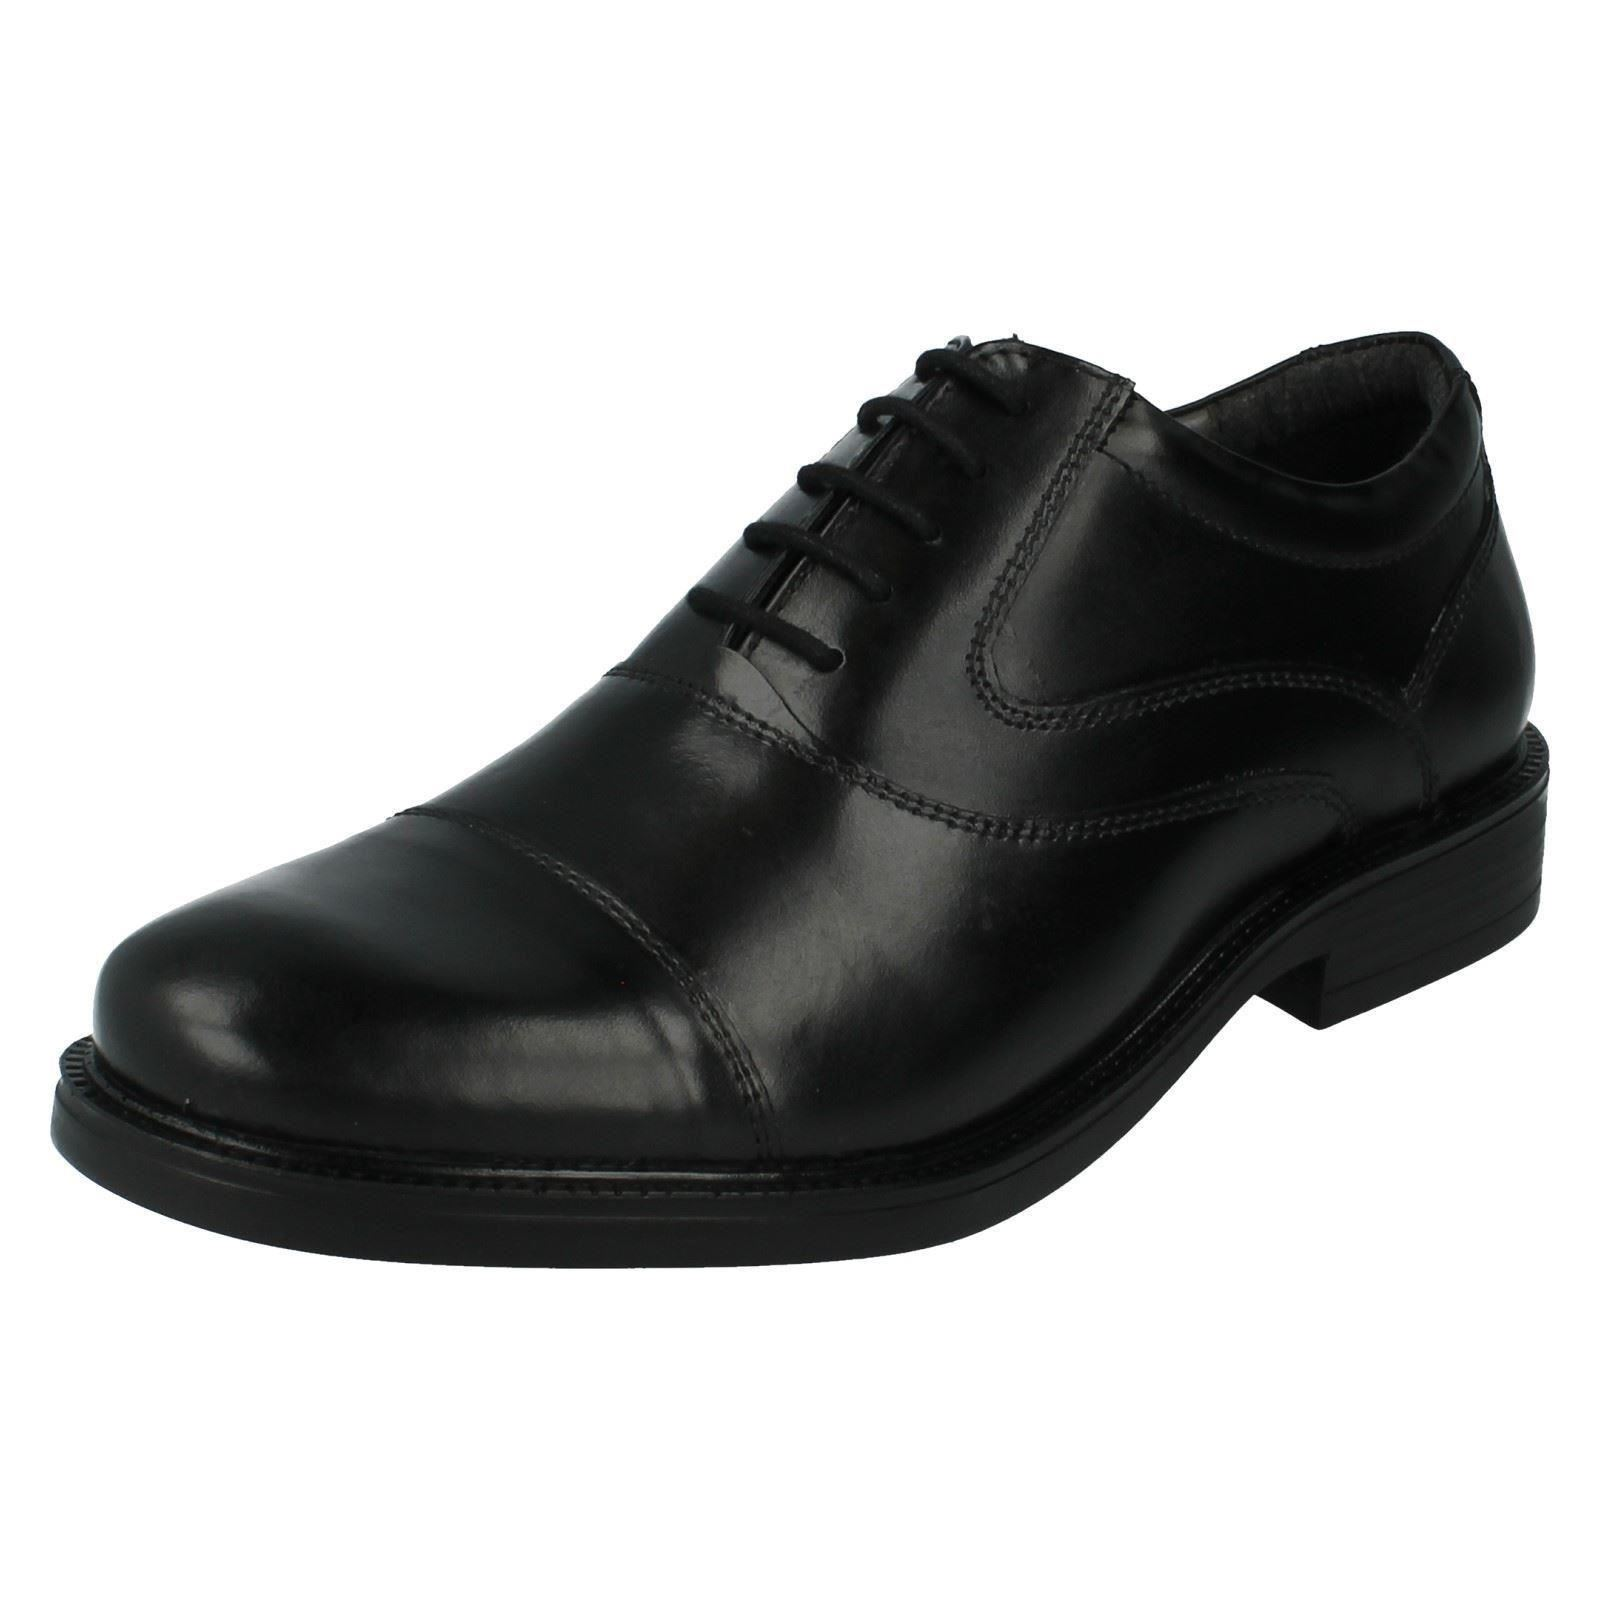 Black Suede Oxford Shoes Mens